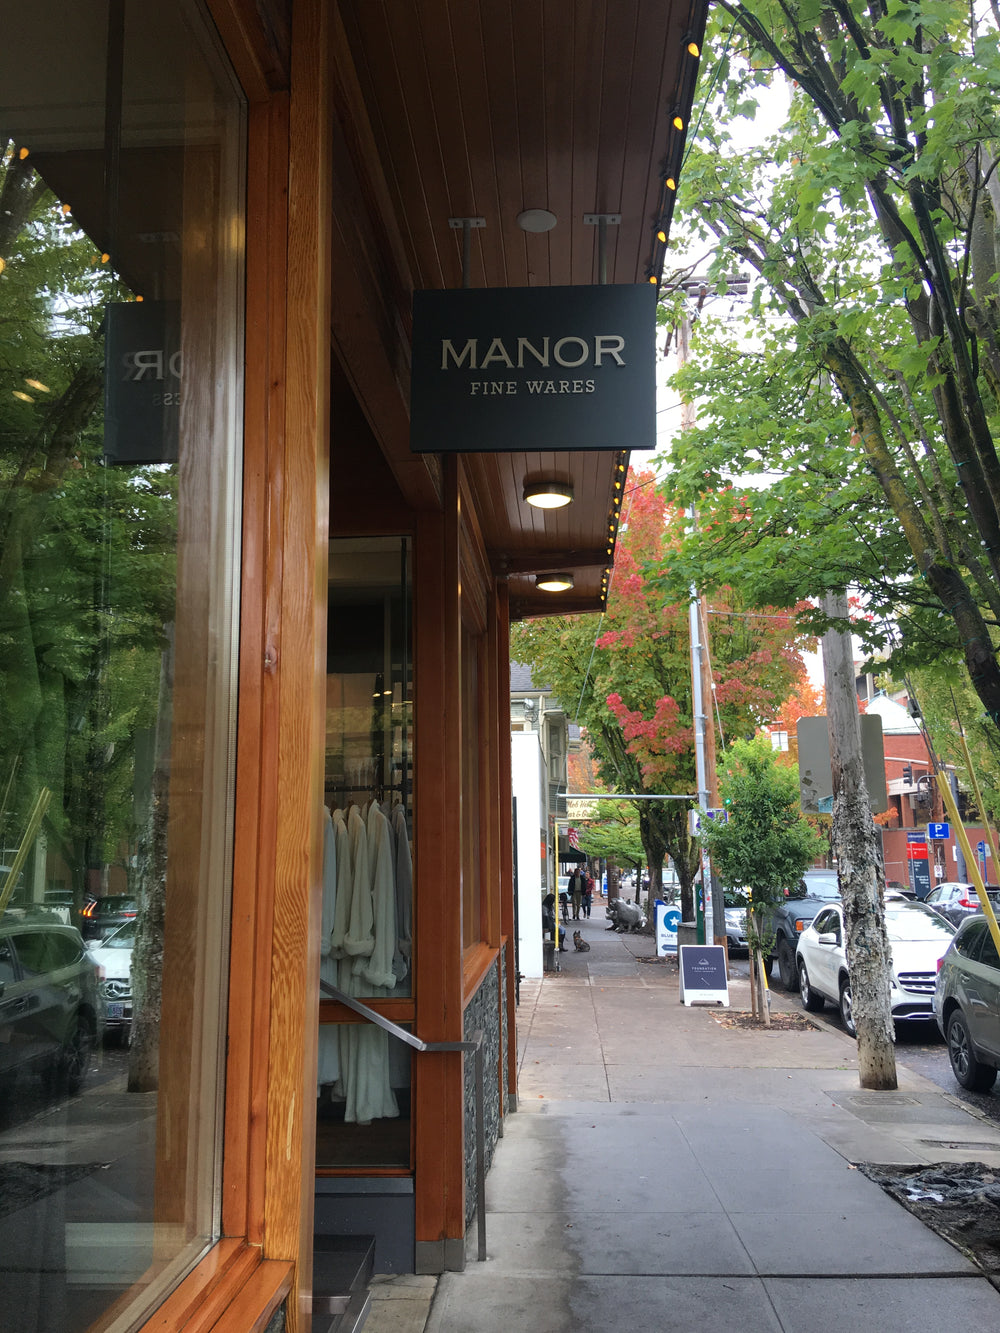 Manor Fine Wares